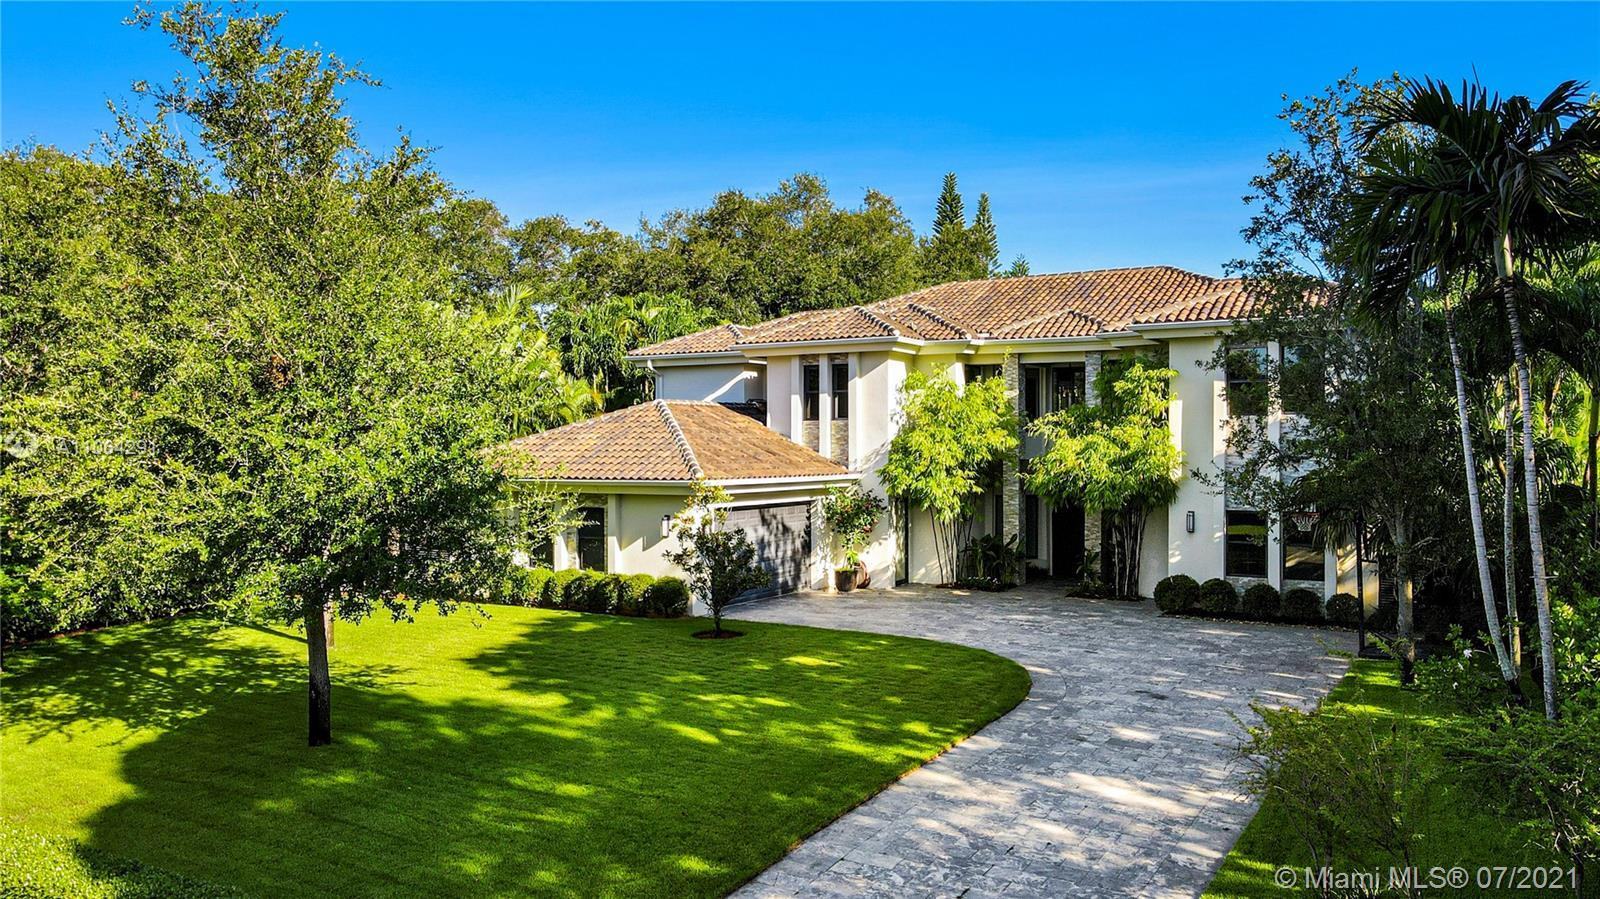 EXPANSIVE BAY POINT RENOVATED FAMILY ESTATE WITH MODERN YET CLASSIC AESTHETIC LOCATED IN THIS ULTRA-